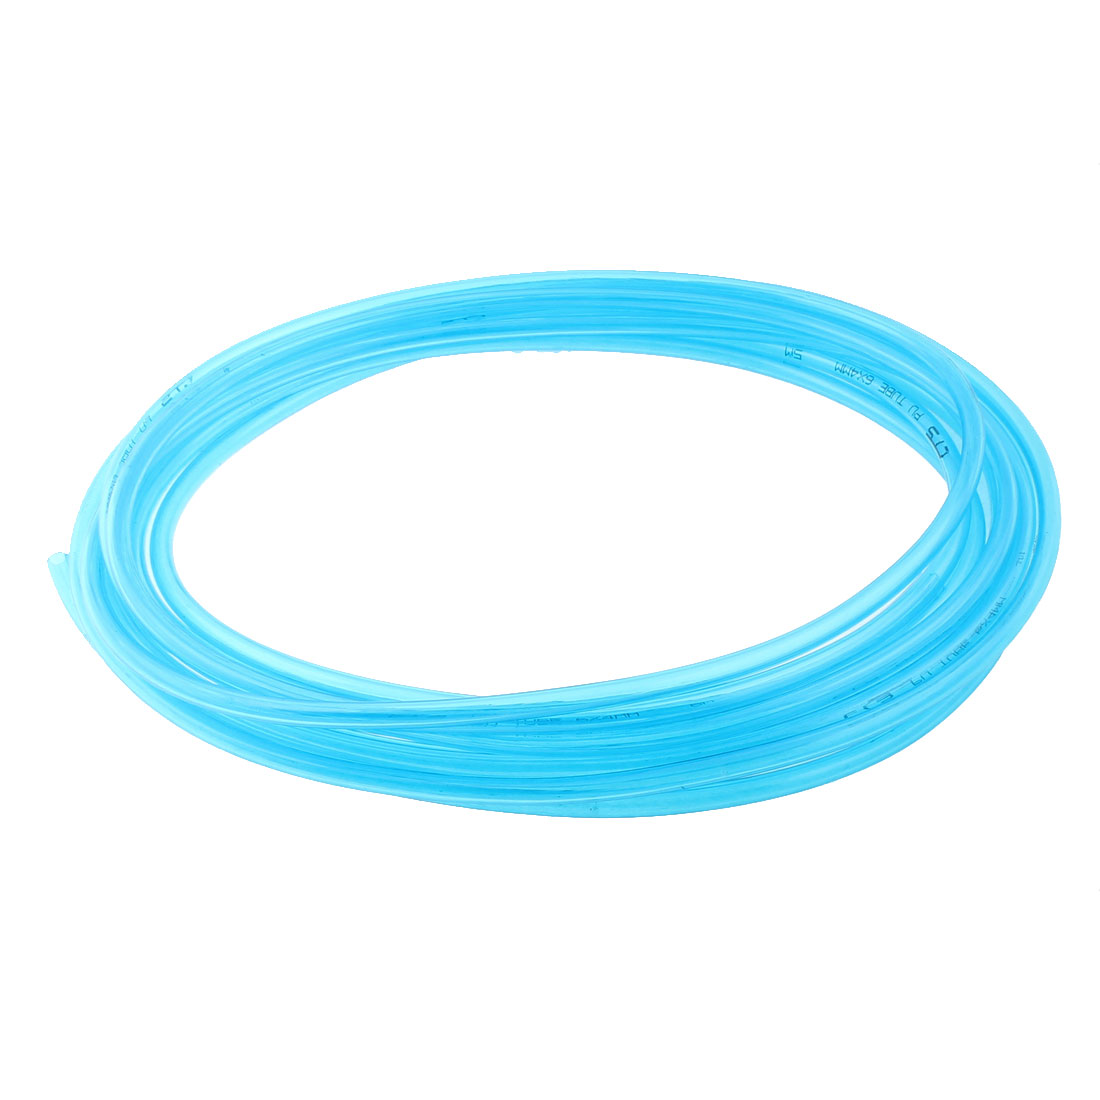 10M Length 6mm x 4mm Dia Pneumatic Polyurethane PU Air Tube Pipe Hose Clear Blue